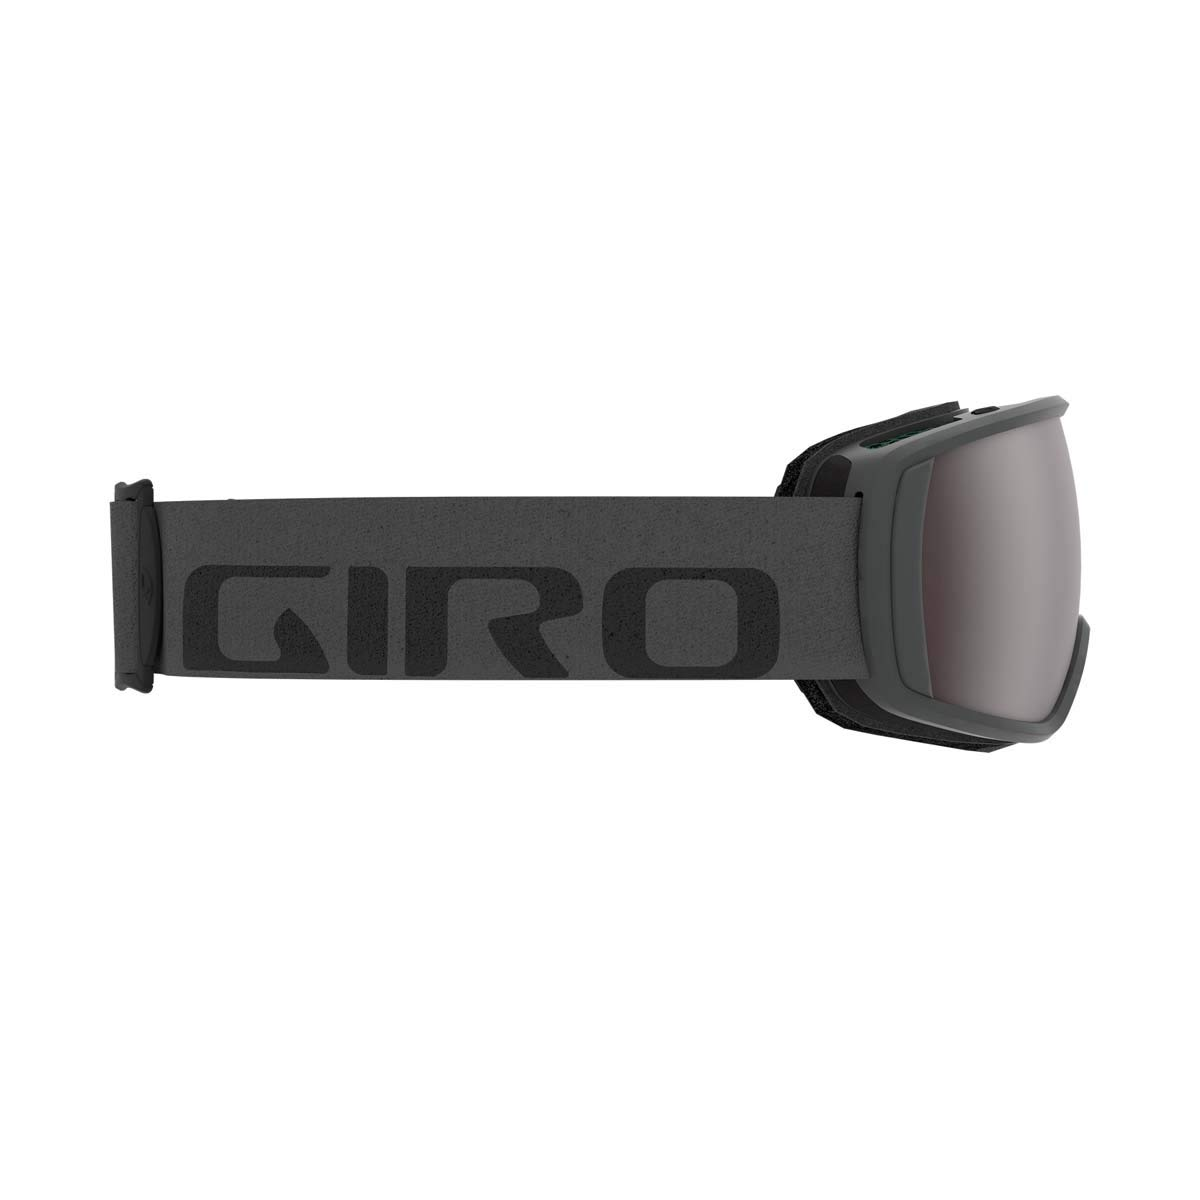 1148f2fdddc5 Amazon.com   Giro Balance Snow Goggles Black Bar - Vivid Infrared   Sports    Outdoors